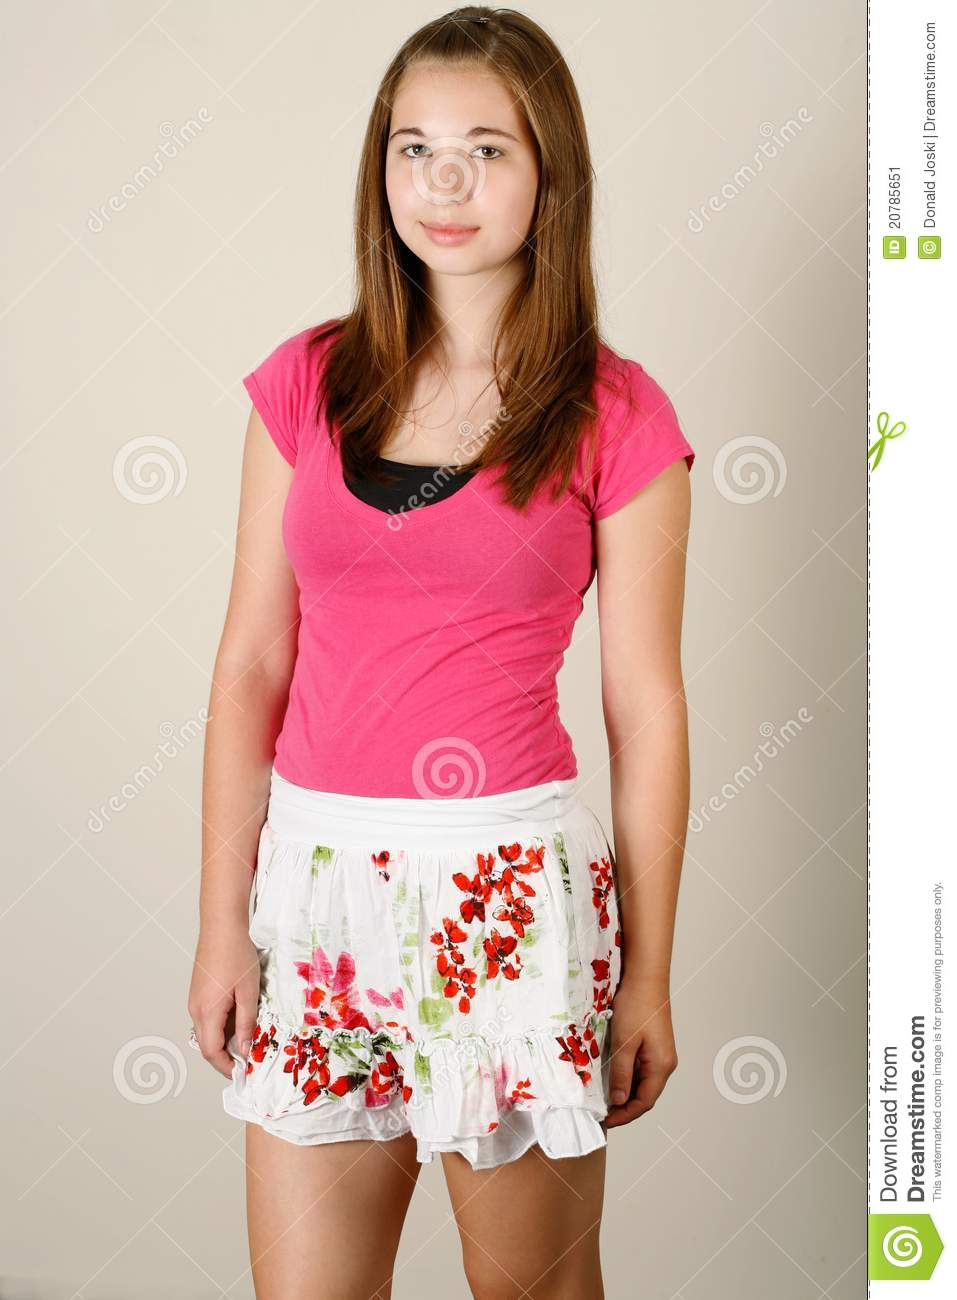 Cute Teen Fashion Stock Image. Image Of Pink, Cheerful